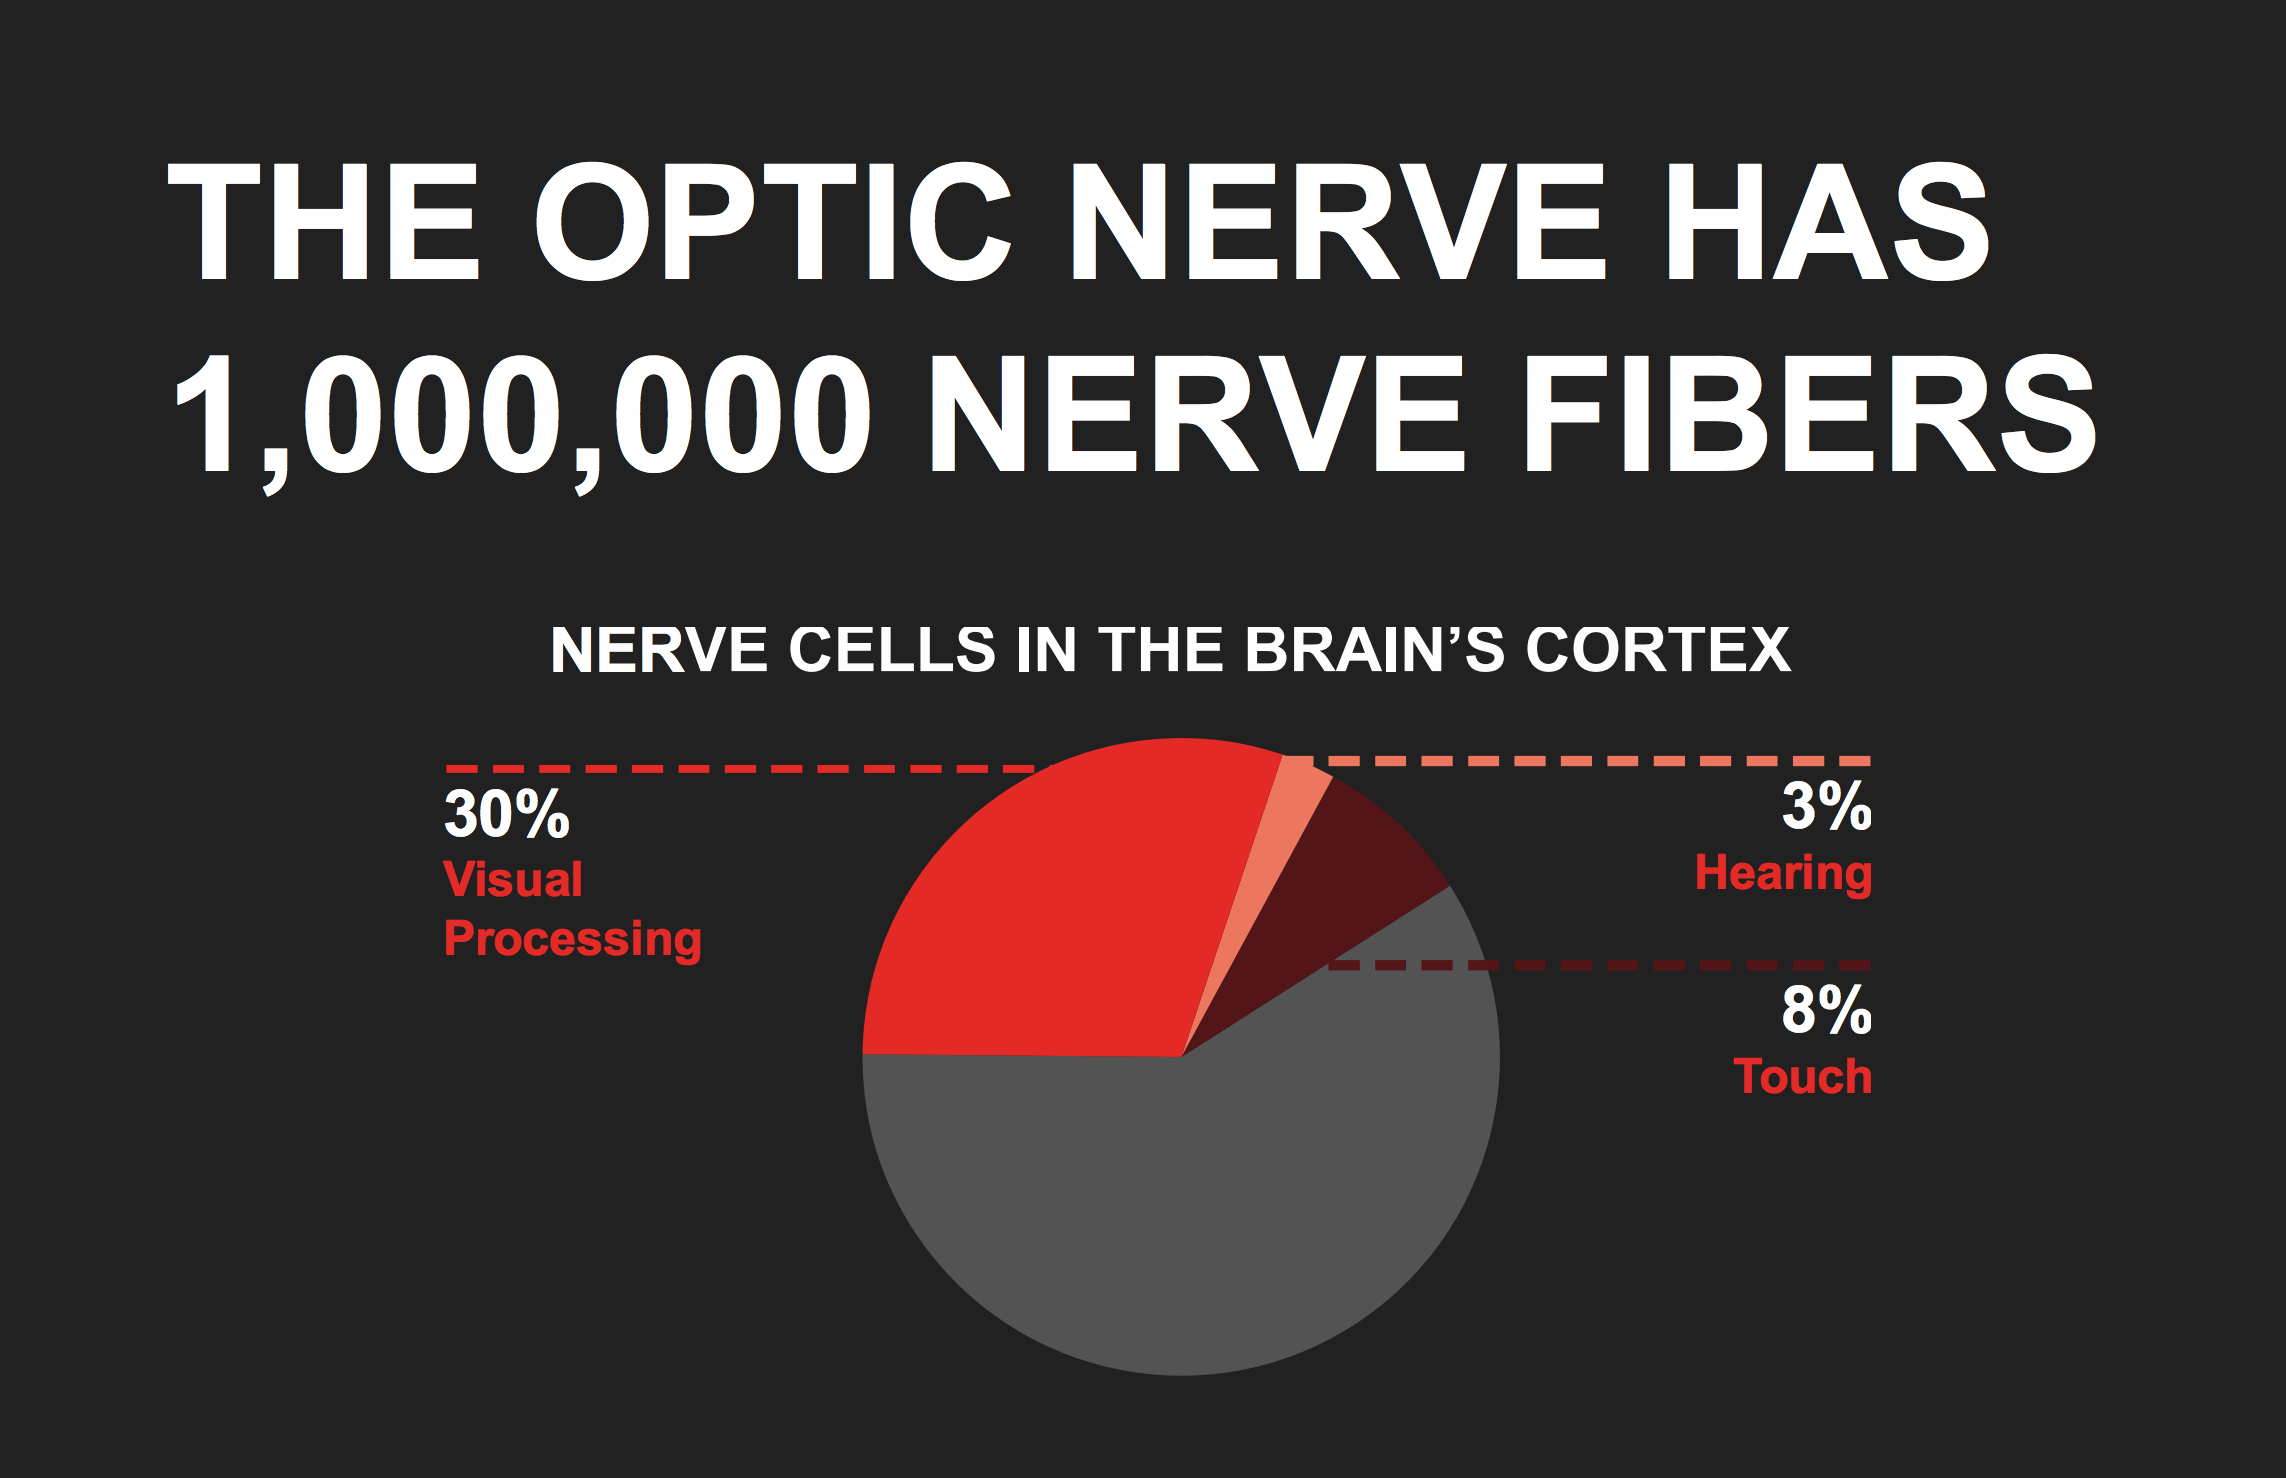 The optic nerve has 1,000,000 nerve fibers